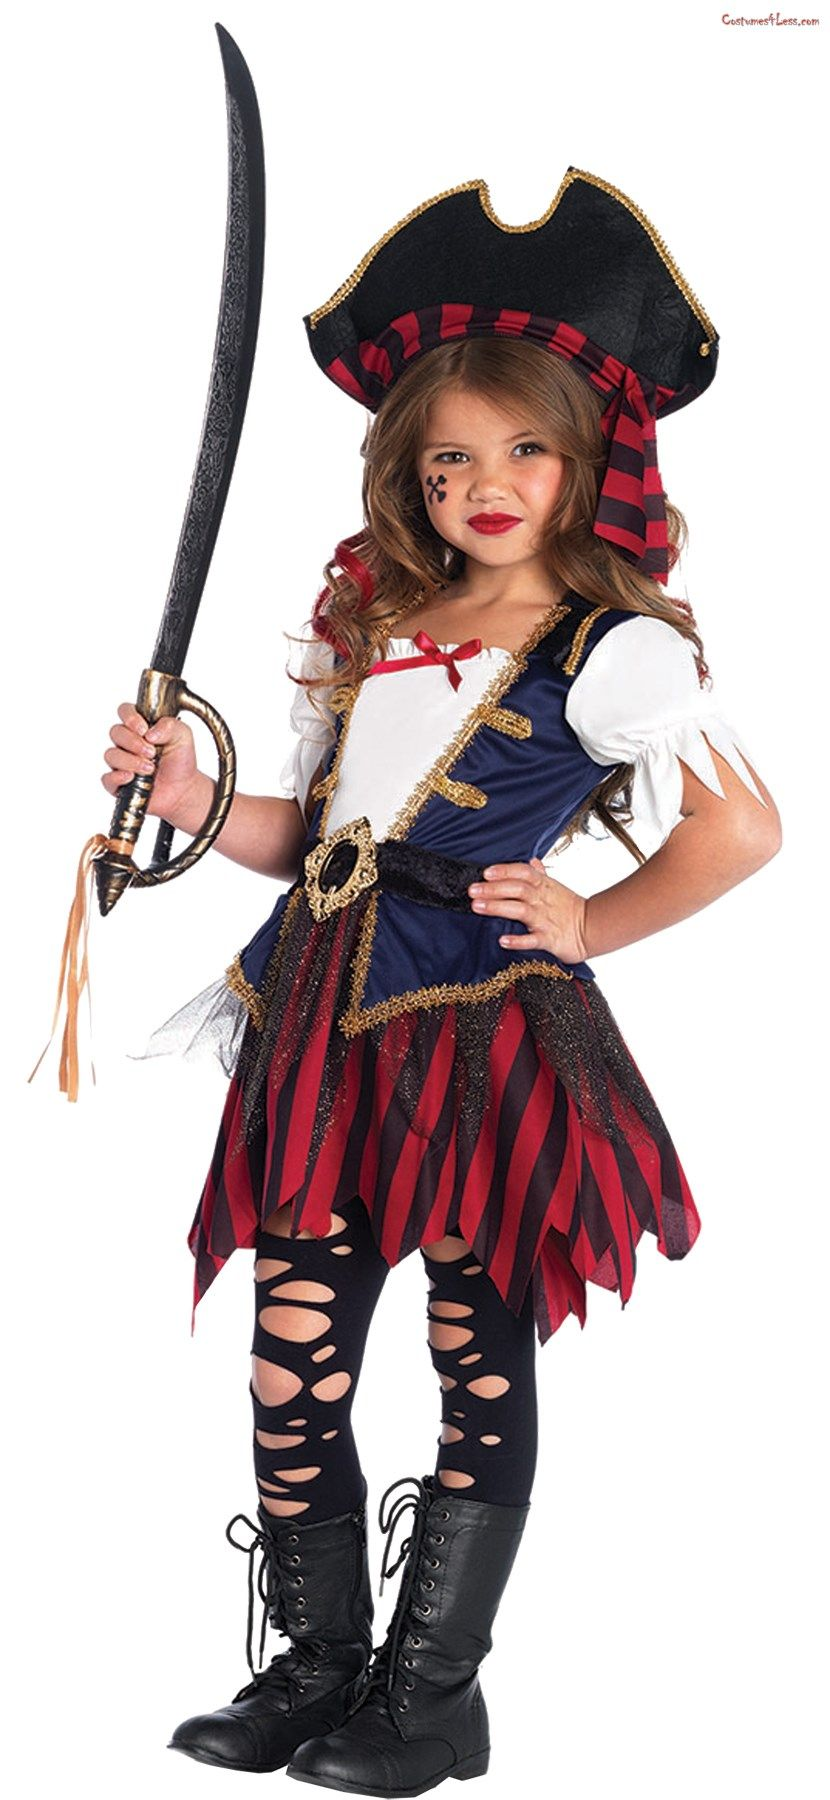 Girls Captain Pirate Costume Childs Buccaneer Carribean Fancy Dress Kids Outfit